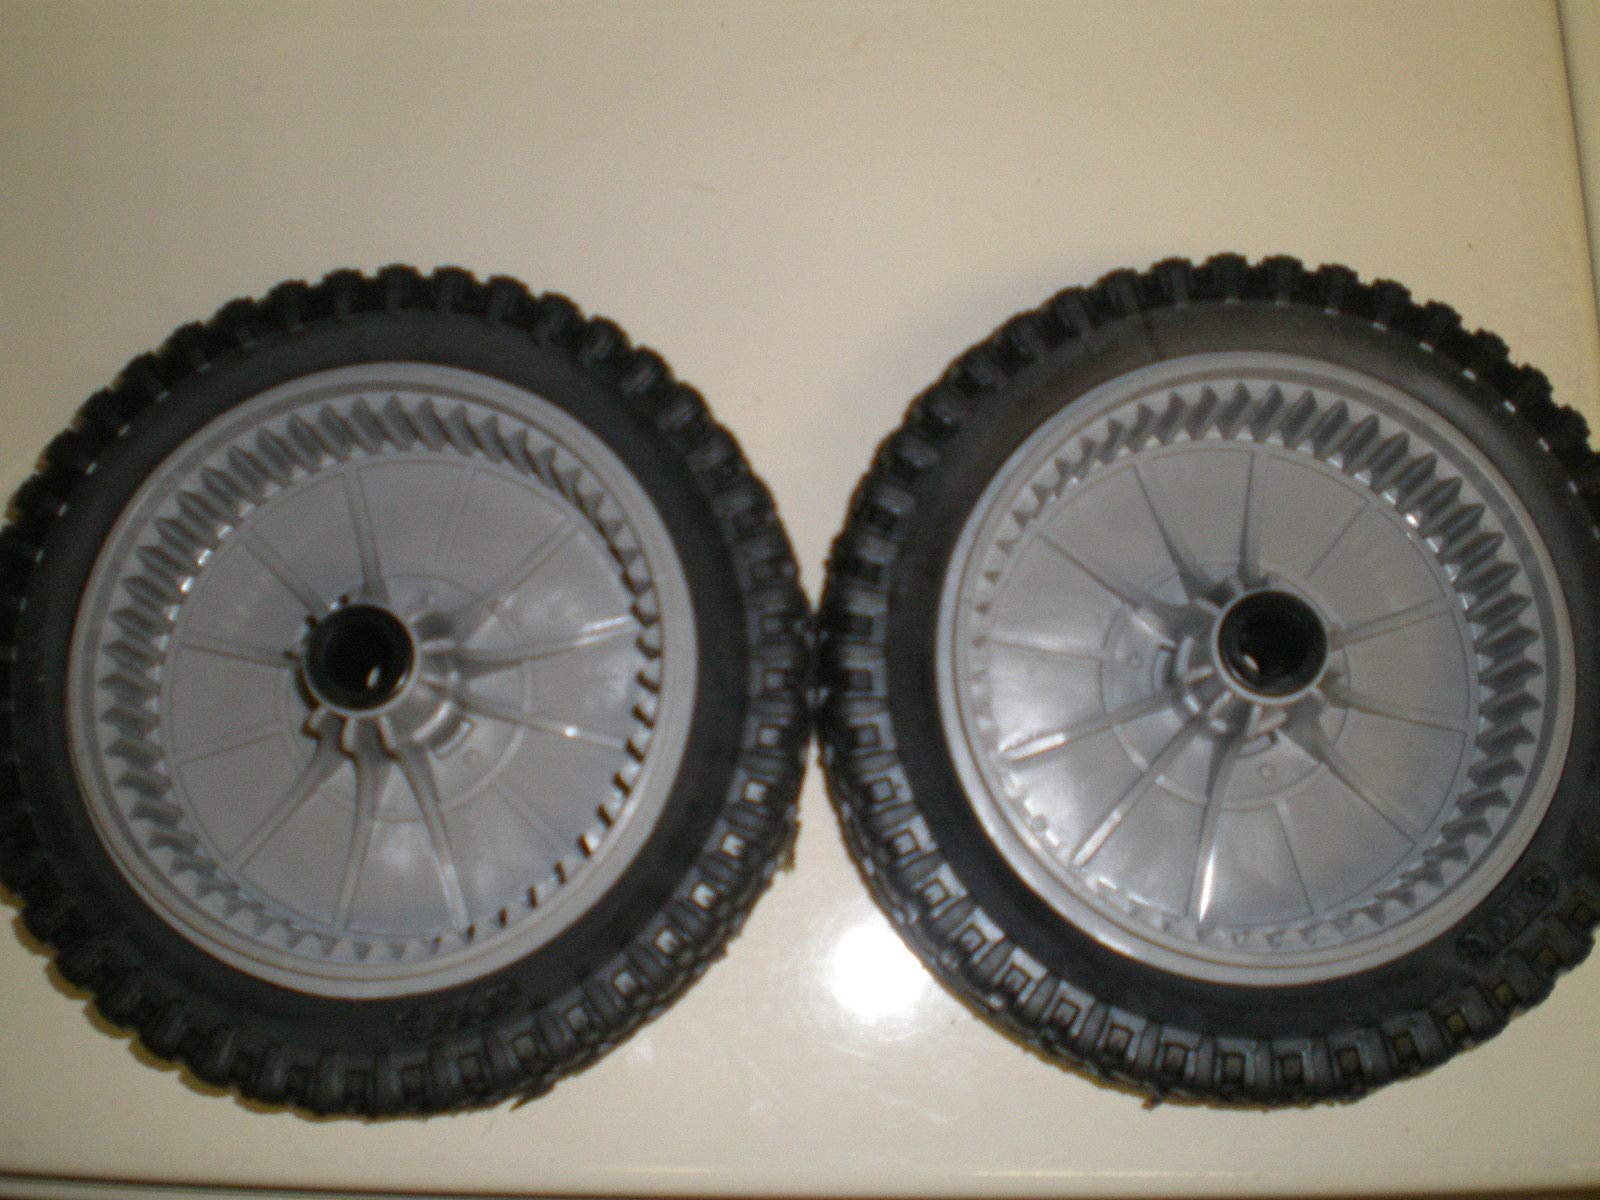 672441MA Scott Scotts Lawnmower Front Wheels Drive 8'' Set of 2 + (Free E-Book) A Complete Guidance to Take Care of Your Lawn